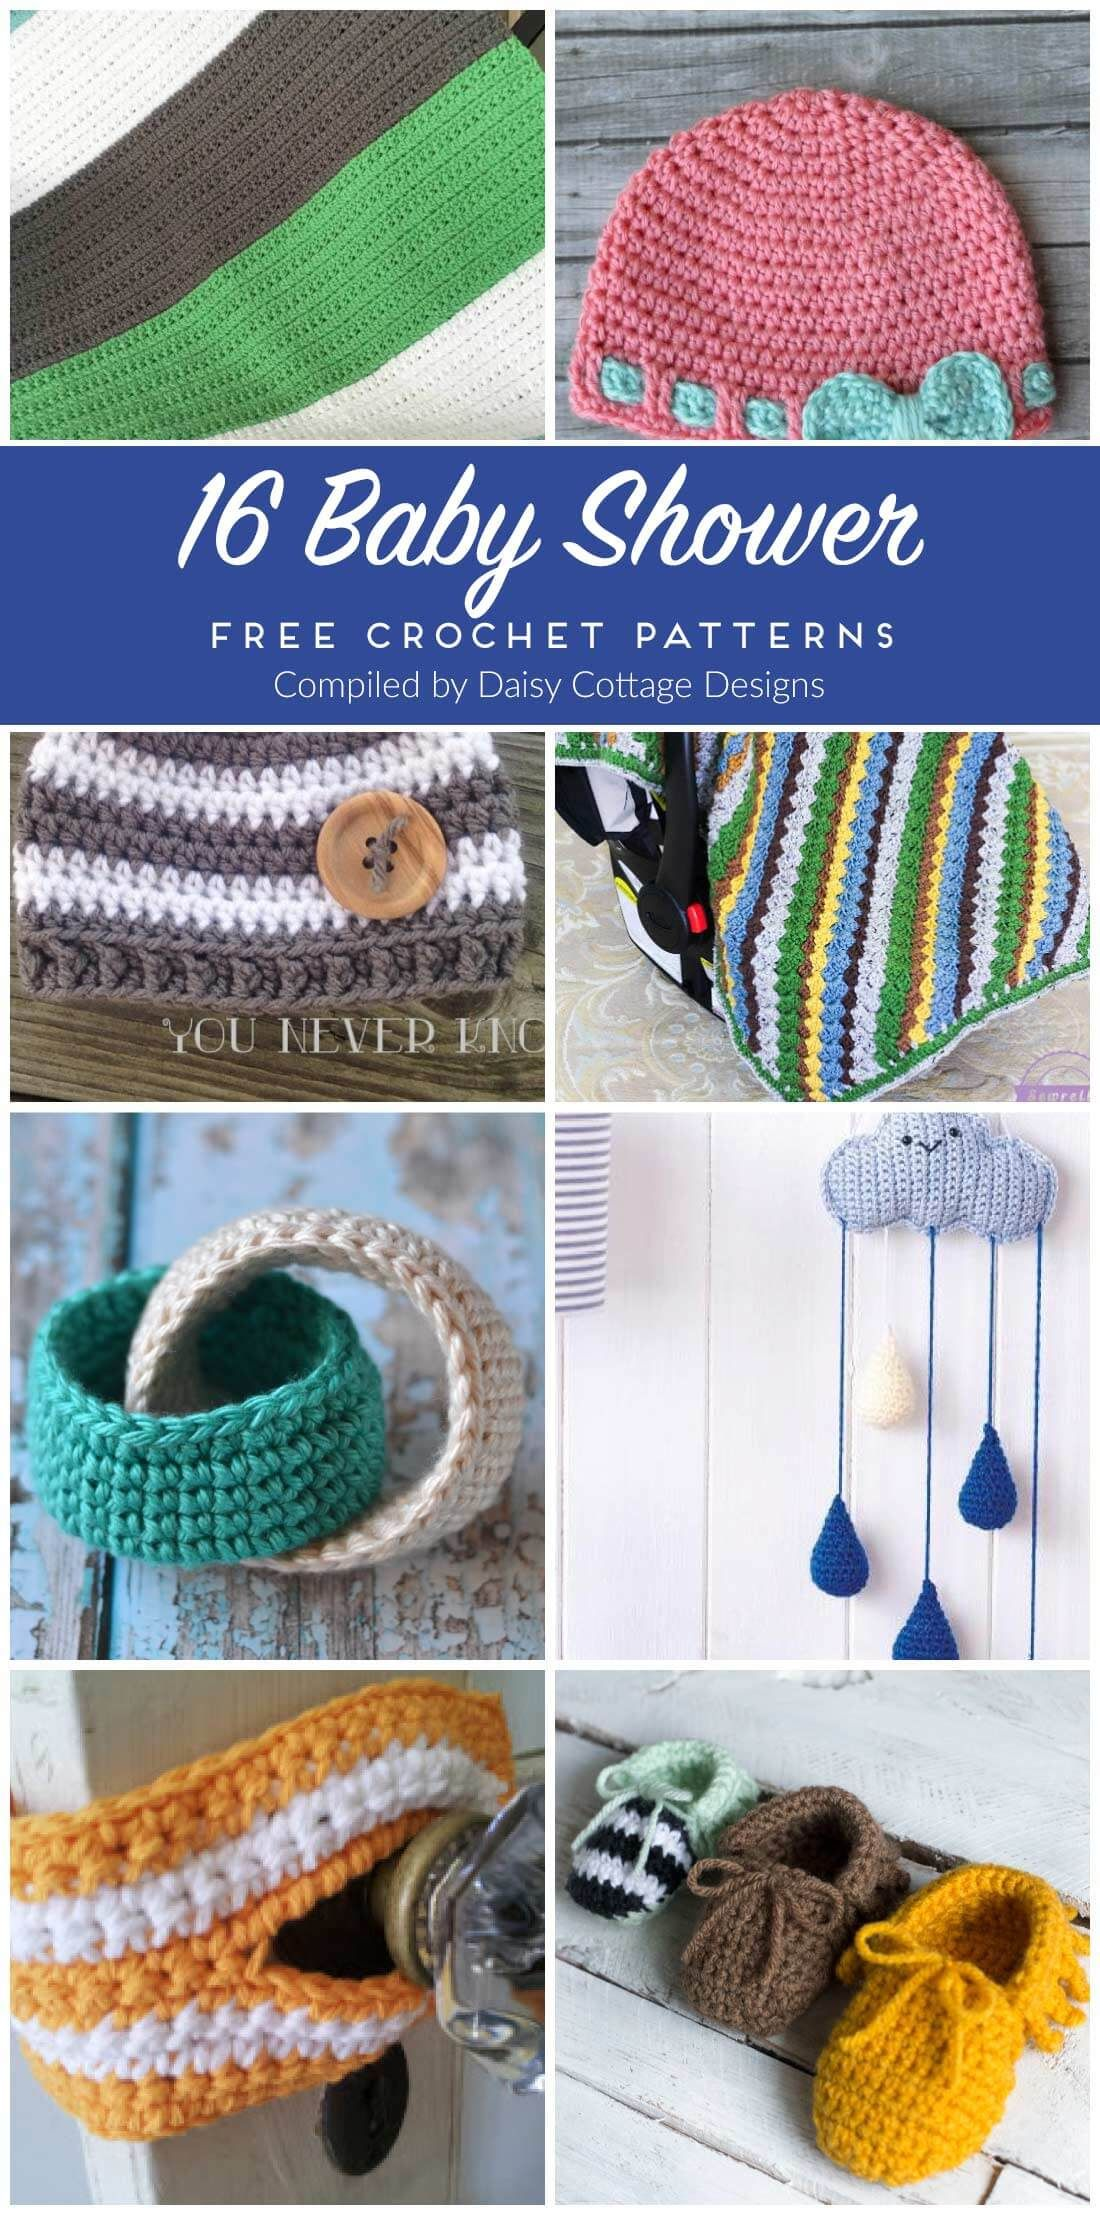 Free Crochet Patterns for Baby | Crochet patterns baby, Free crochet ...